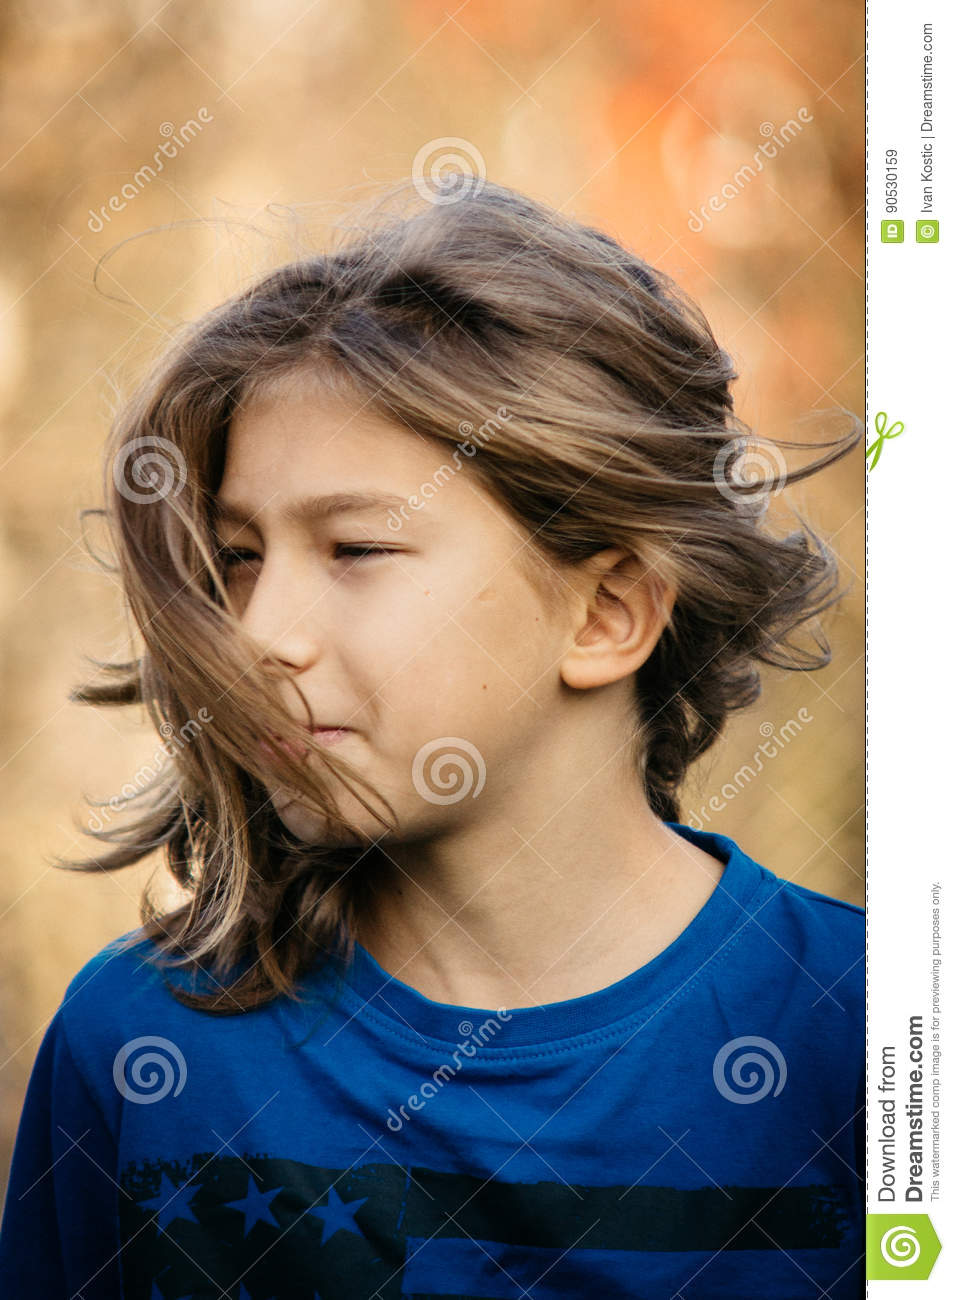 Teen Boy with long hair stock image. Image of blue, happy